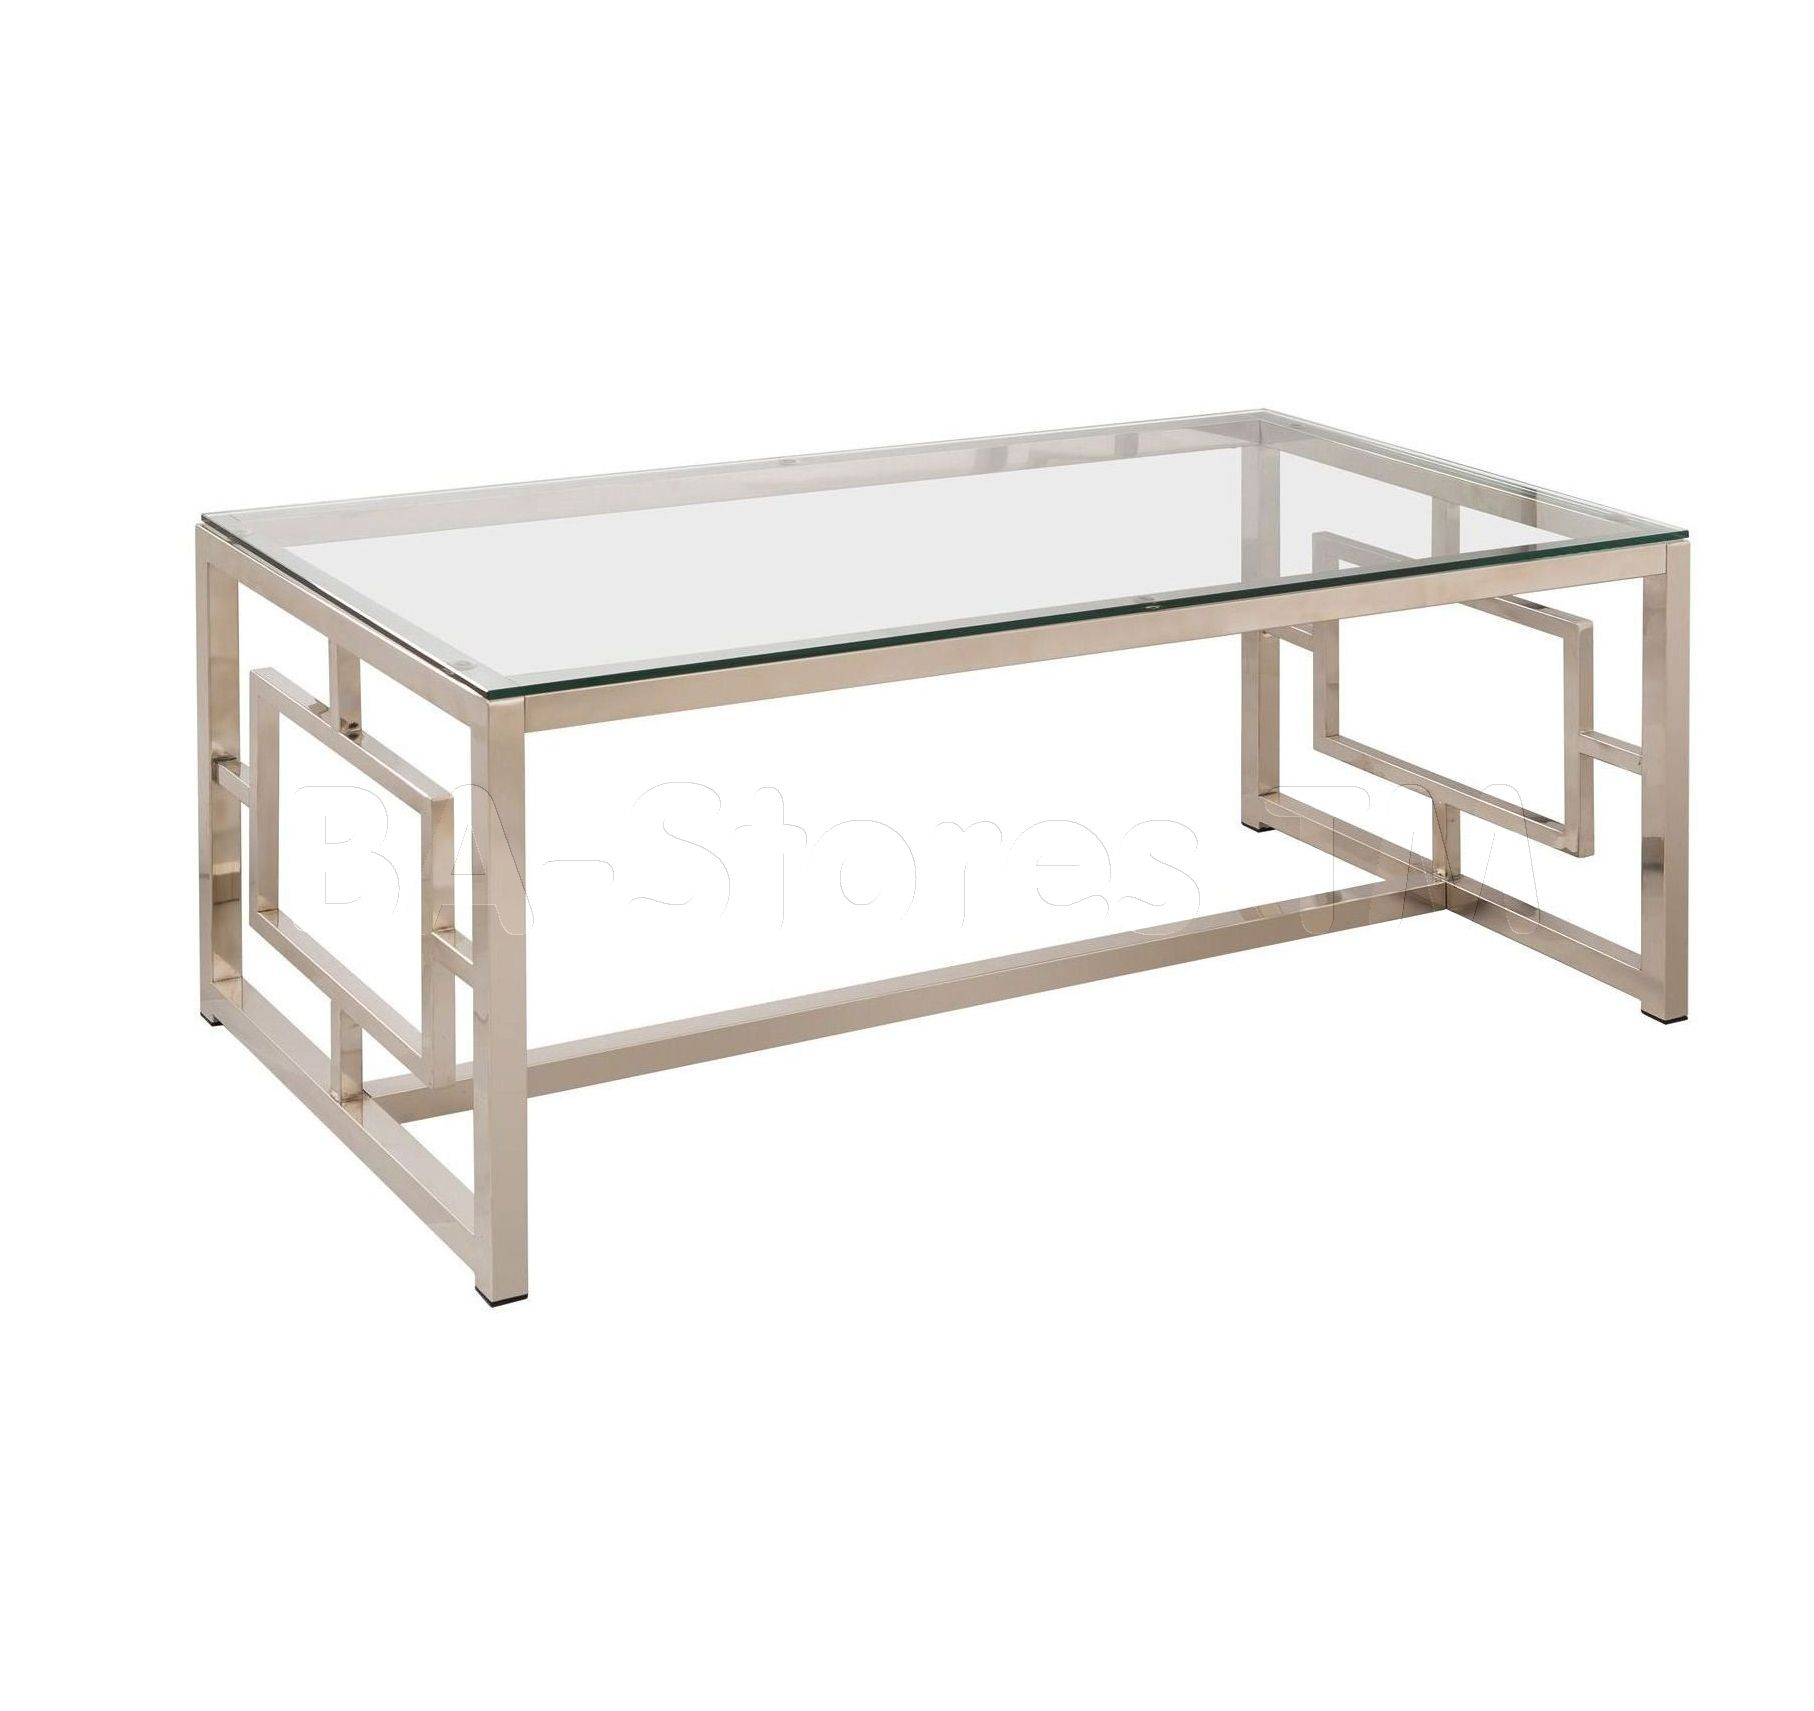 Satin nickel glass top coffee table ideas for the house occasional group contemporary metal coffee table with glass table top geometric motif by coaster at value city furniture geotapseo Image collections